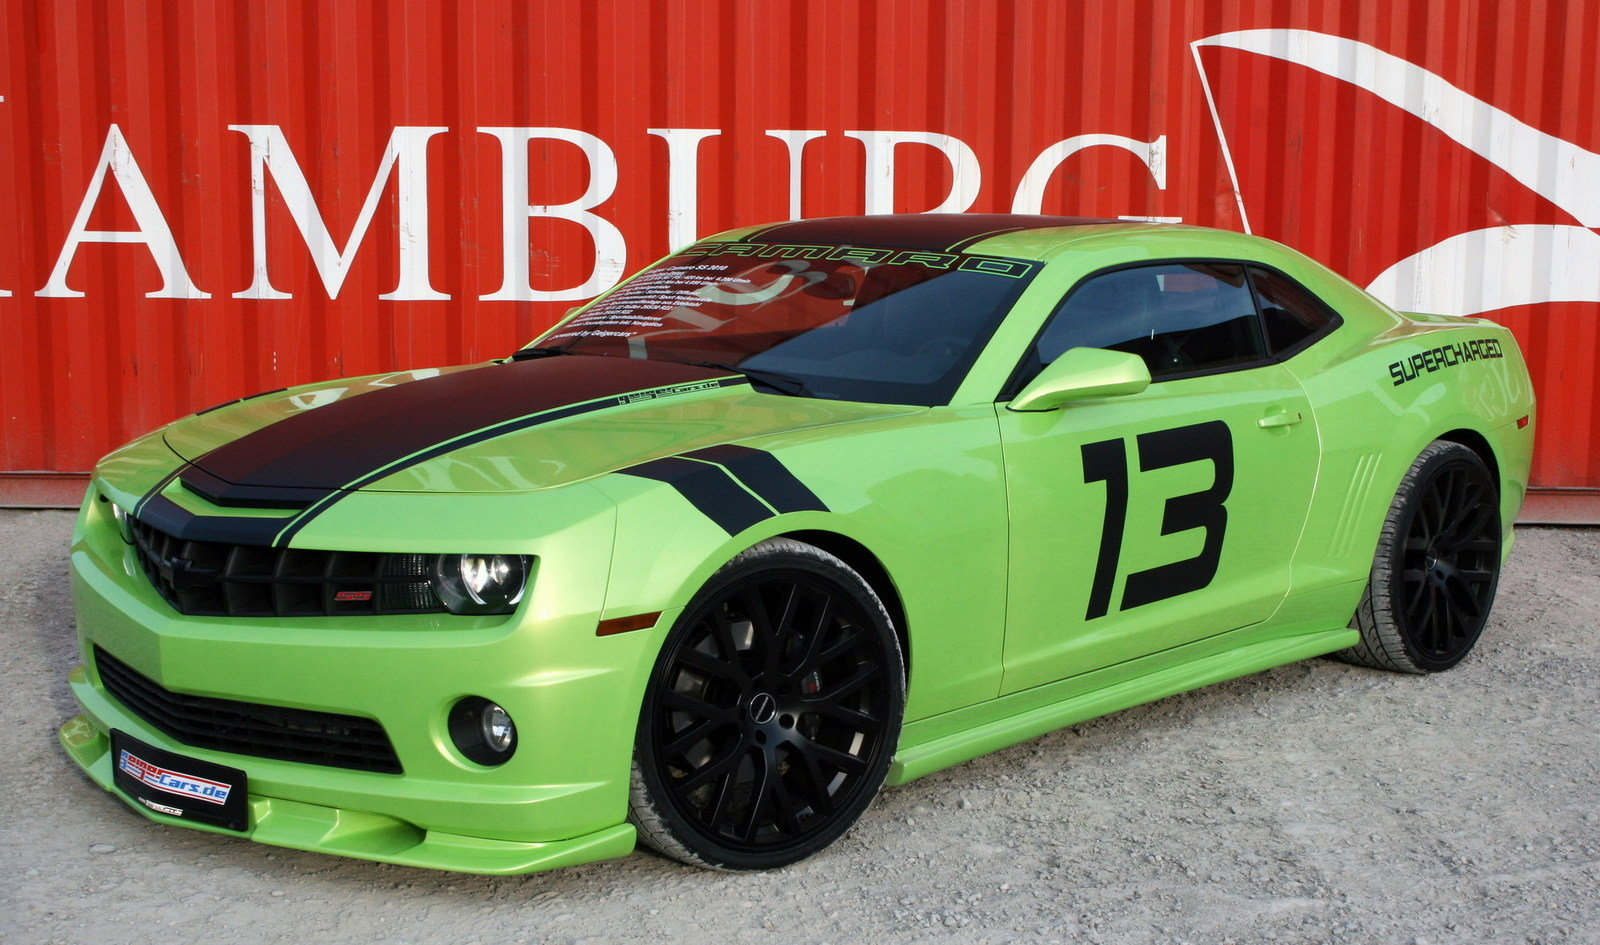 2011 Chevrolet Camaro Super Sport 564 HP By GeigerCars